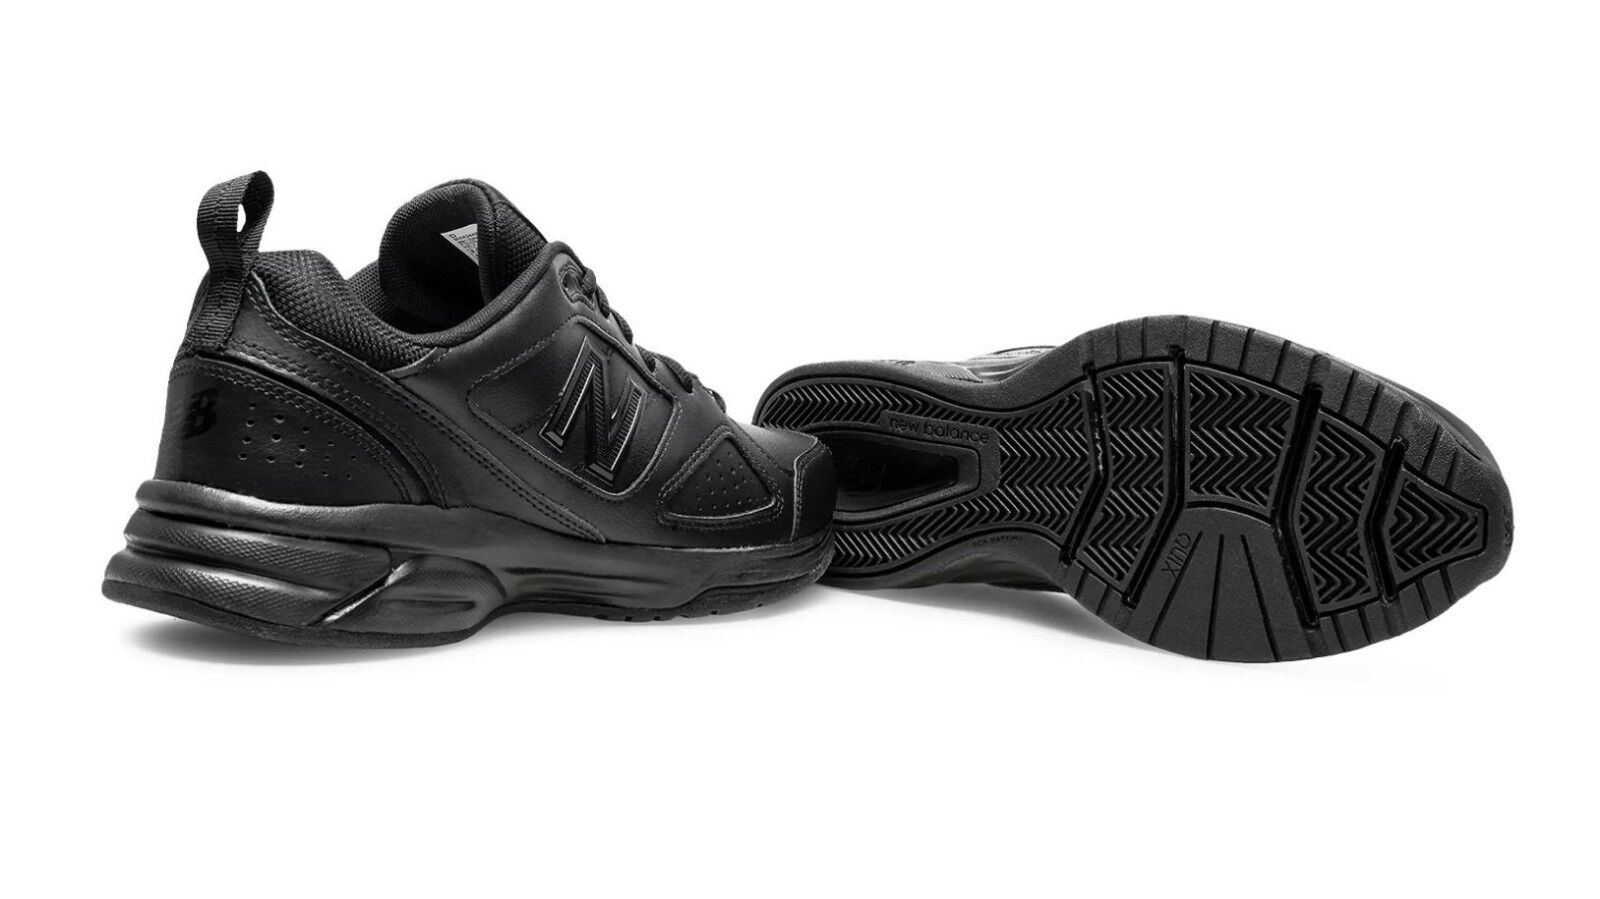 New Balance MX624 Mens X-Trainer shoes (4E) + FREE AUS DELIVERY  (Black)